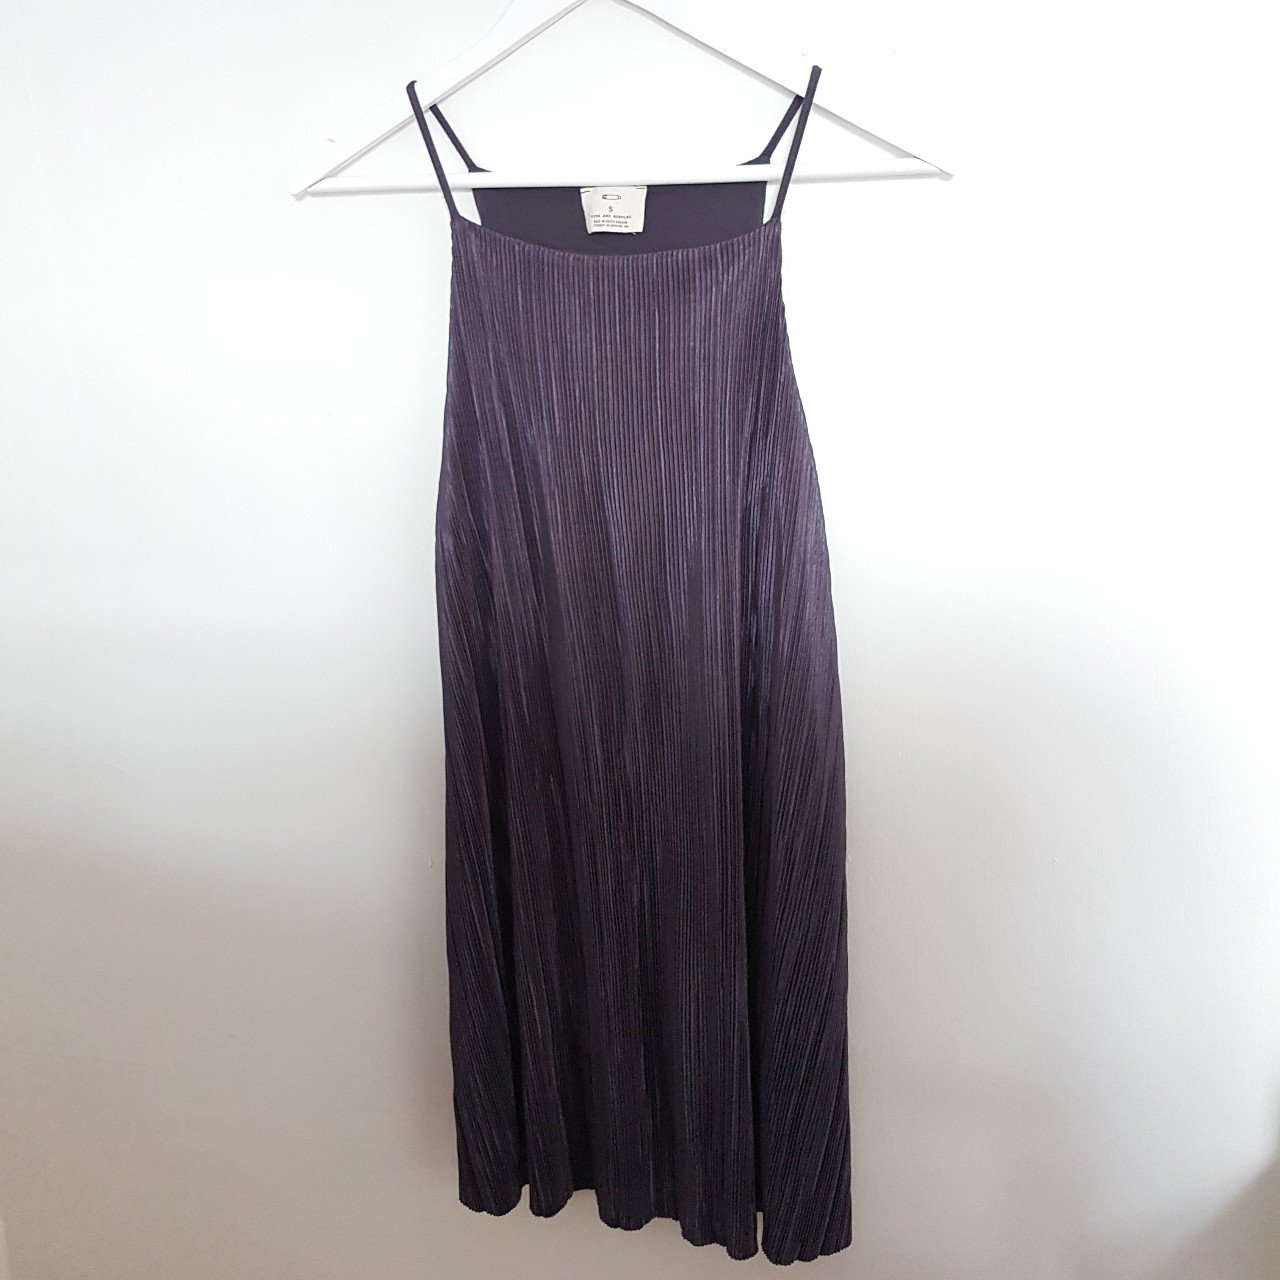 912d9c12d3 @rachaeljayne_. yesterday. Hull, GB. Urban outfitters dress with pleats ...